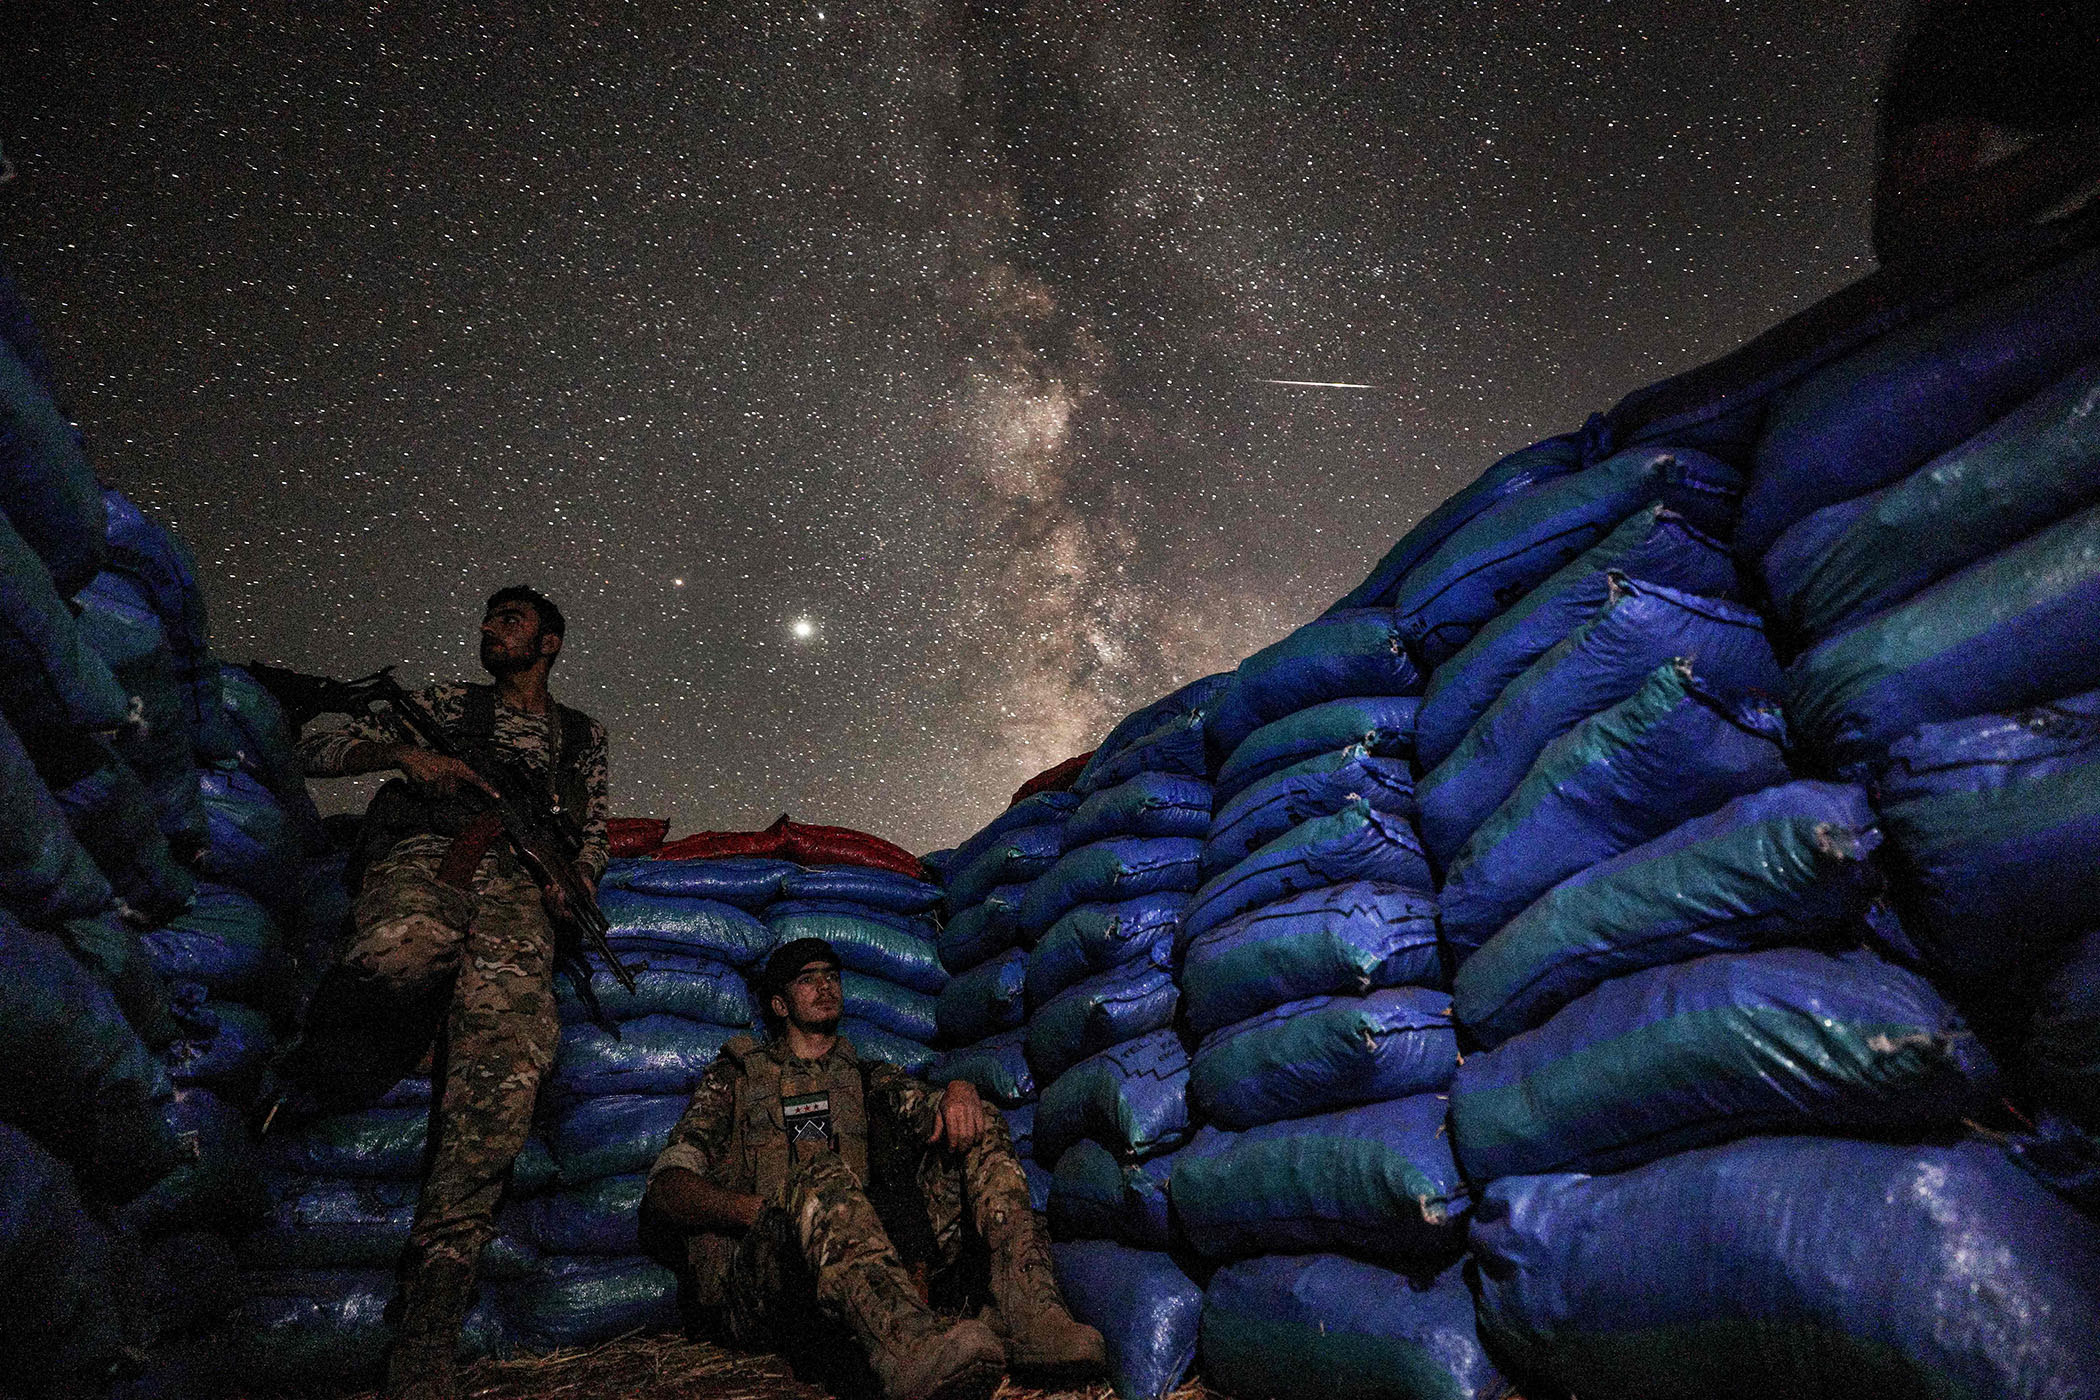 Two Syrian soldiers, one sitting on the ground and the other standing, are surrounded by sandbags that form a barrier; above them, the Milky Way galaxy and many stars are visible